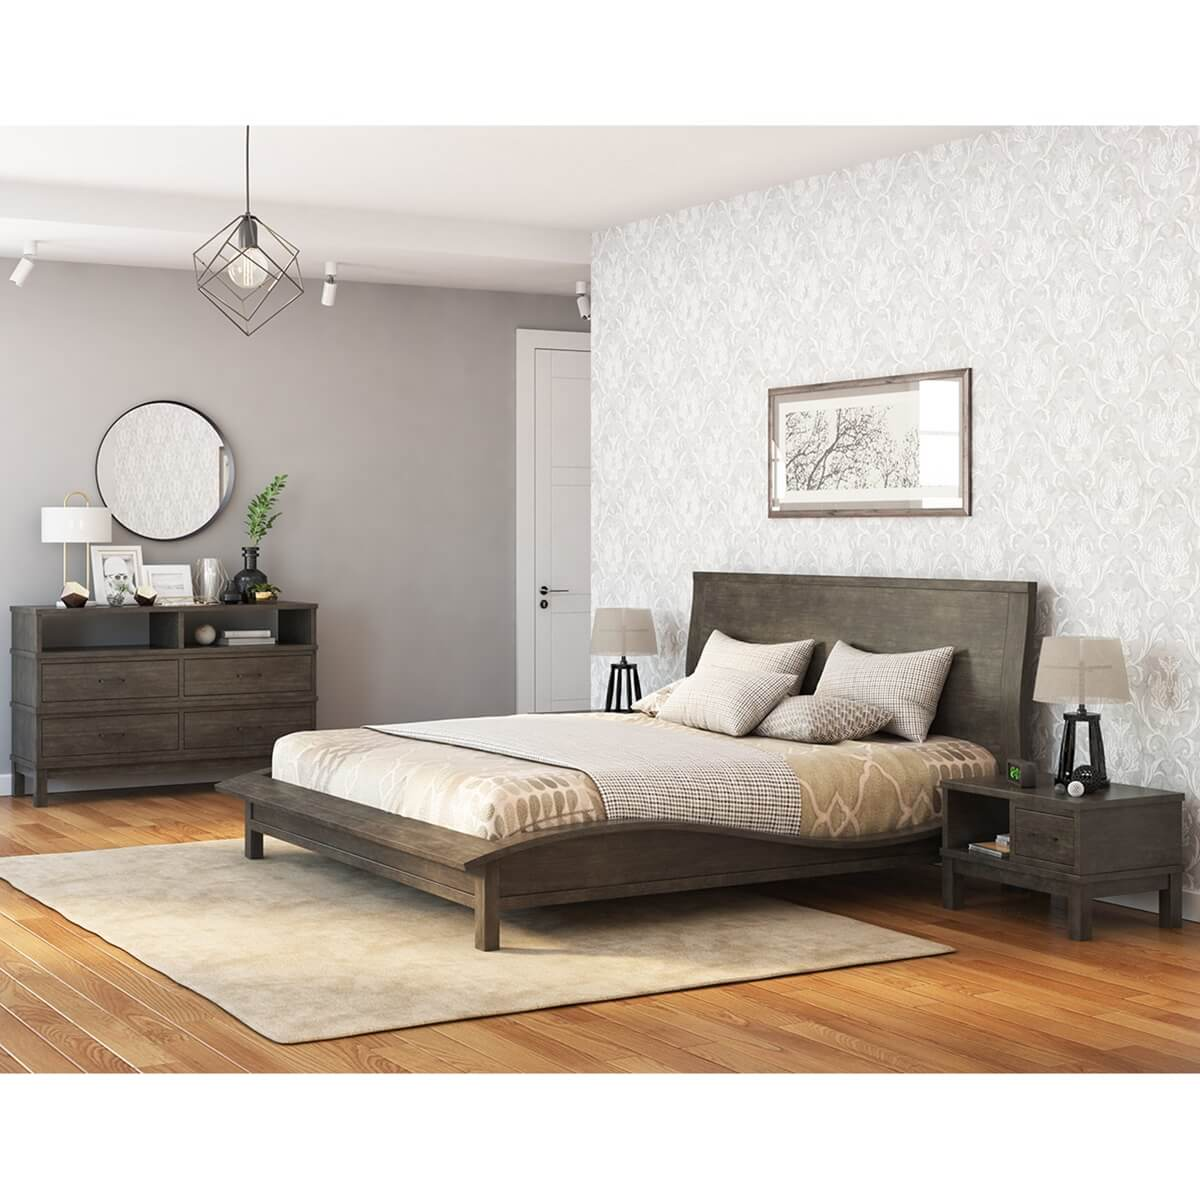 An amazon discount code, also known as a promotional code, is a digital code provided by the online retailer amazon and is generally entered during the onl an amazon discount code, also known as a promotional code, is a digital code provide. El Dorado Mahogany Wood Gray 4 Piece Bedroom Set